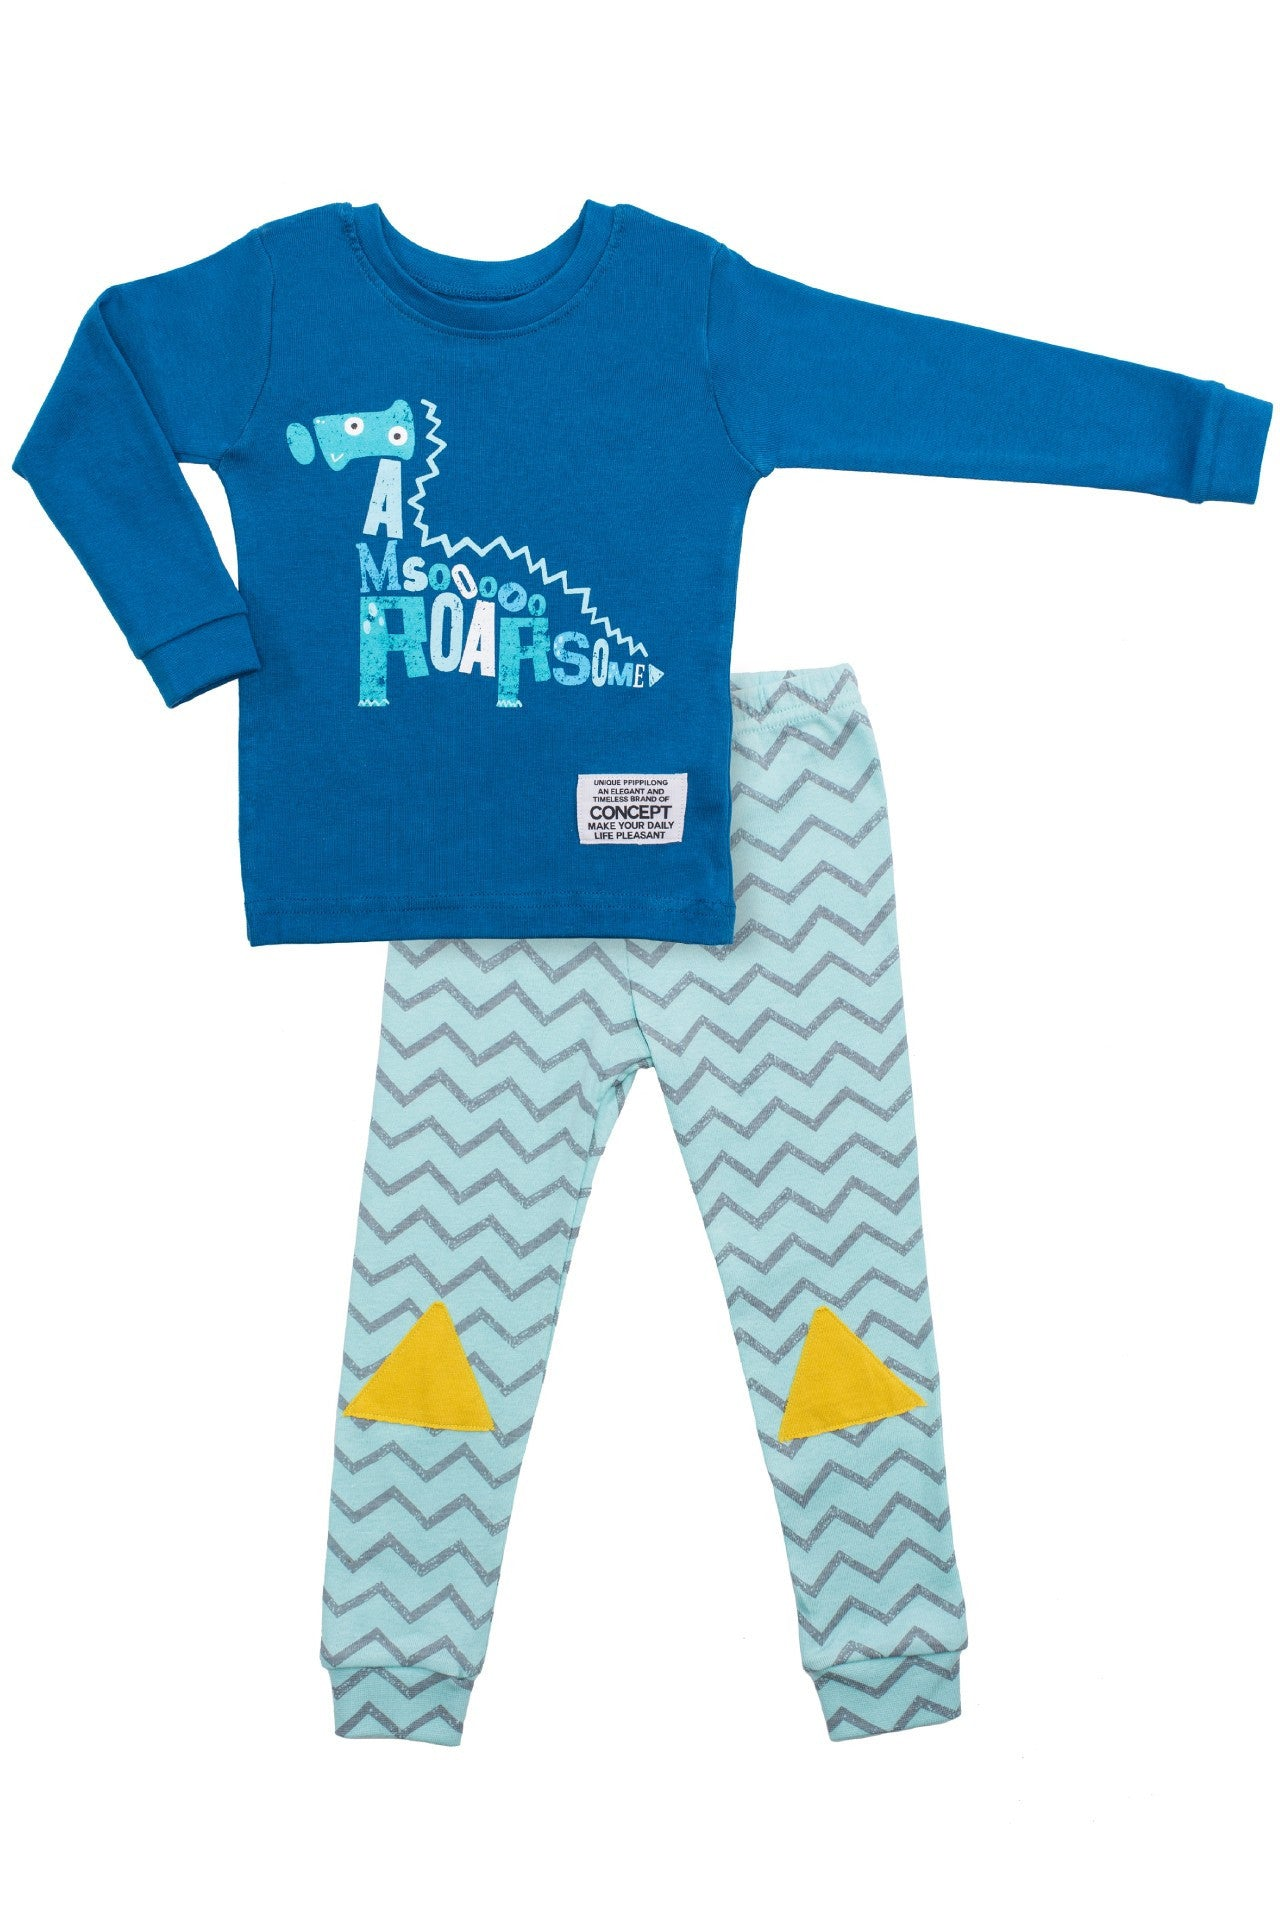 30s Cotton Count - Lightest Pajamas - Dino Boy